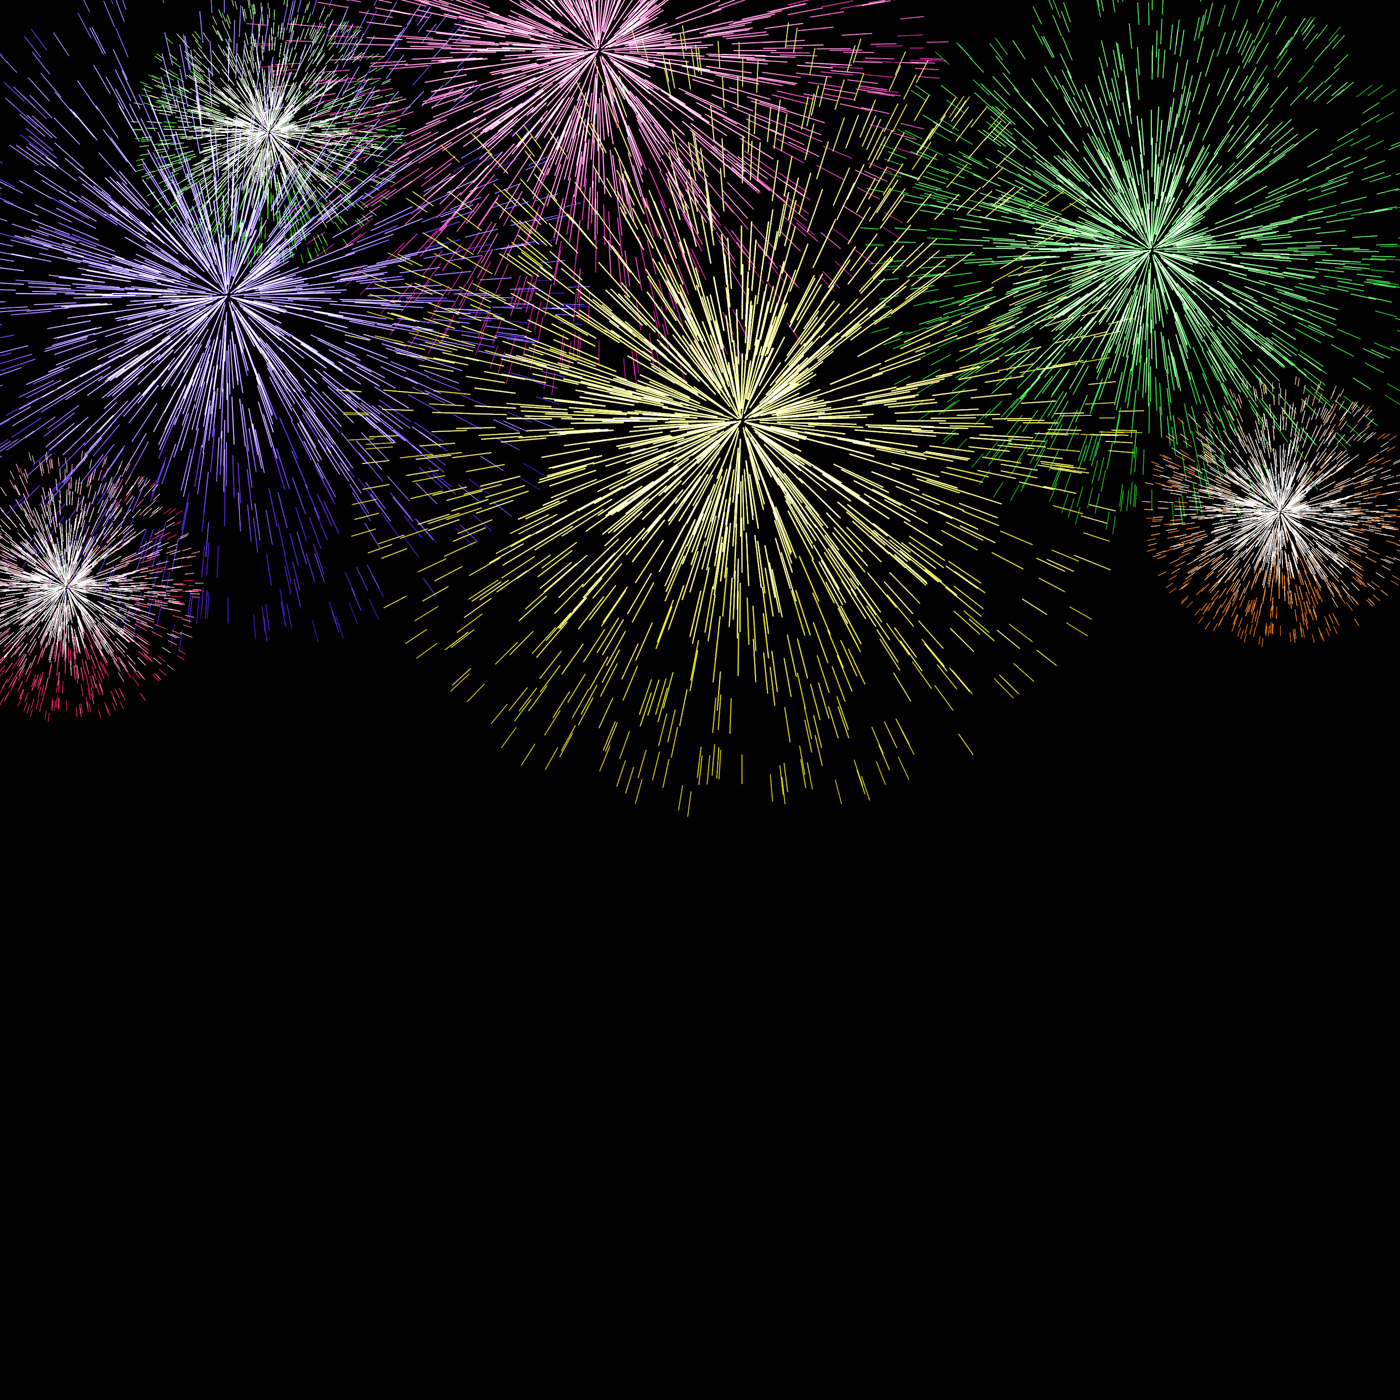 Exploding fireworks background for new years or independence celebrati photo